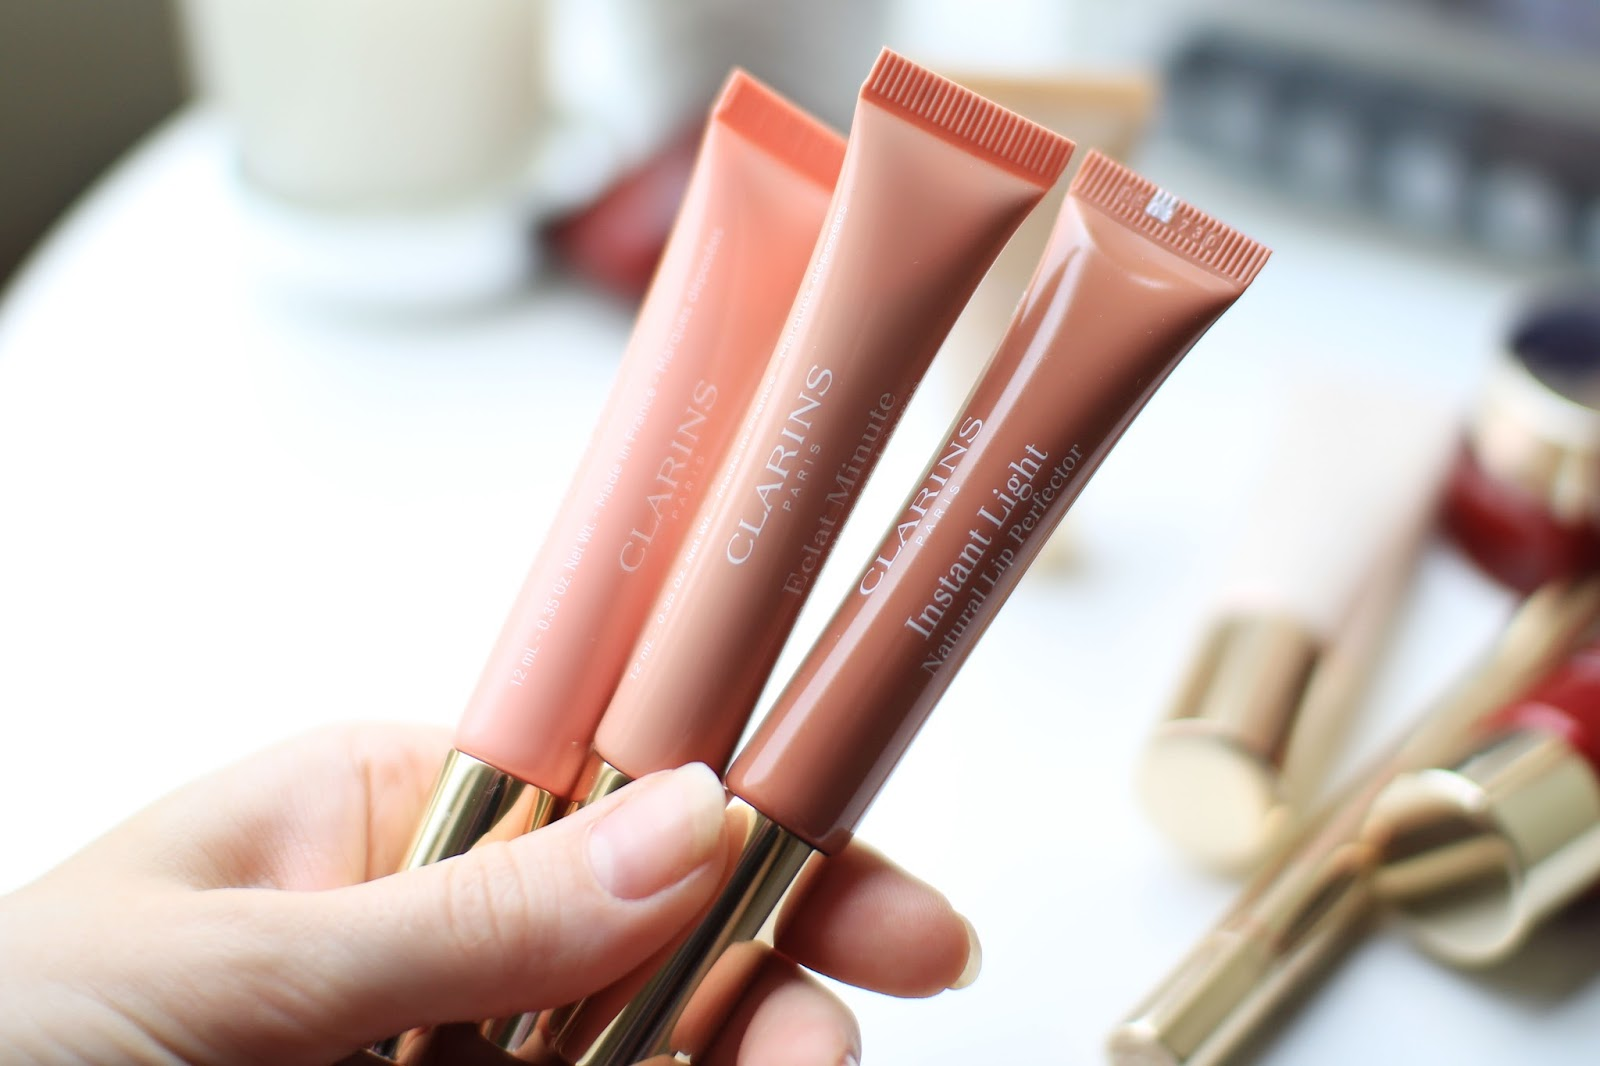 Instant light lip perfectors from Clarins